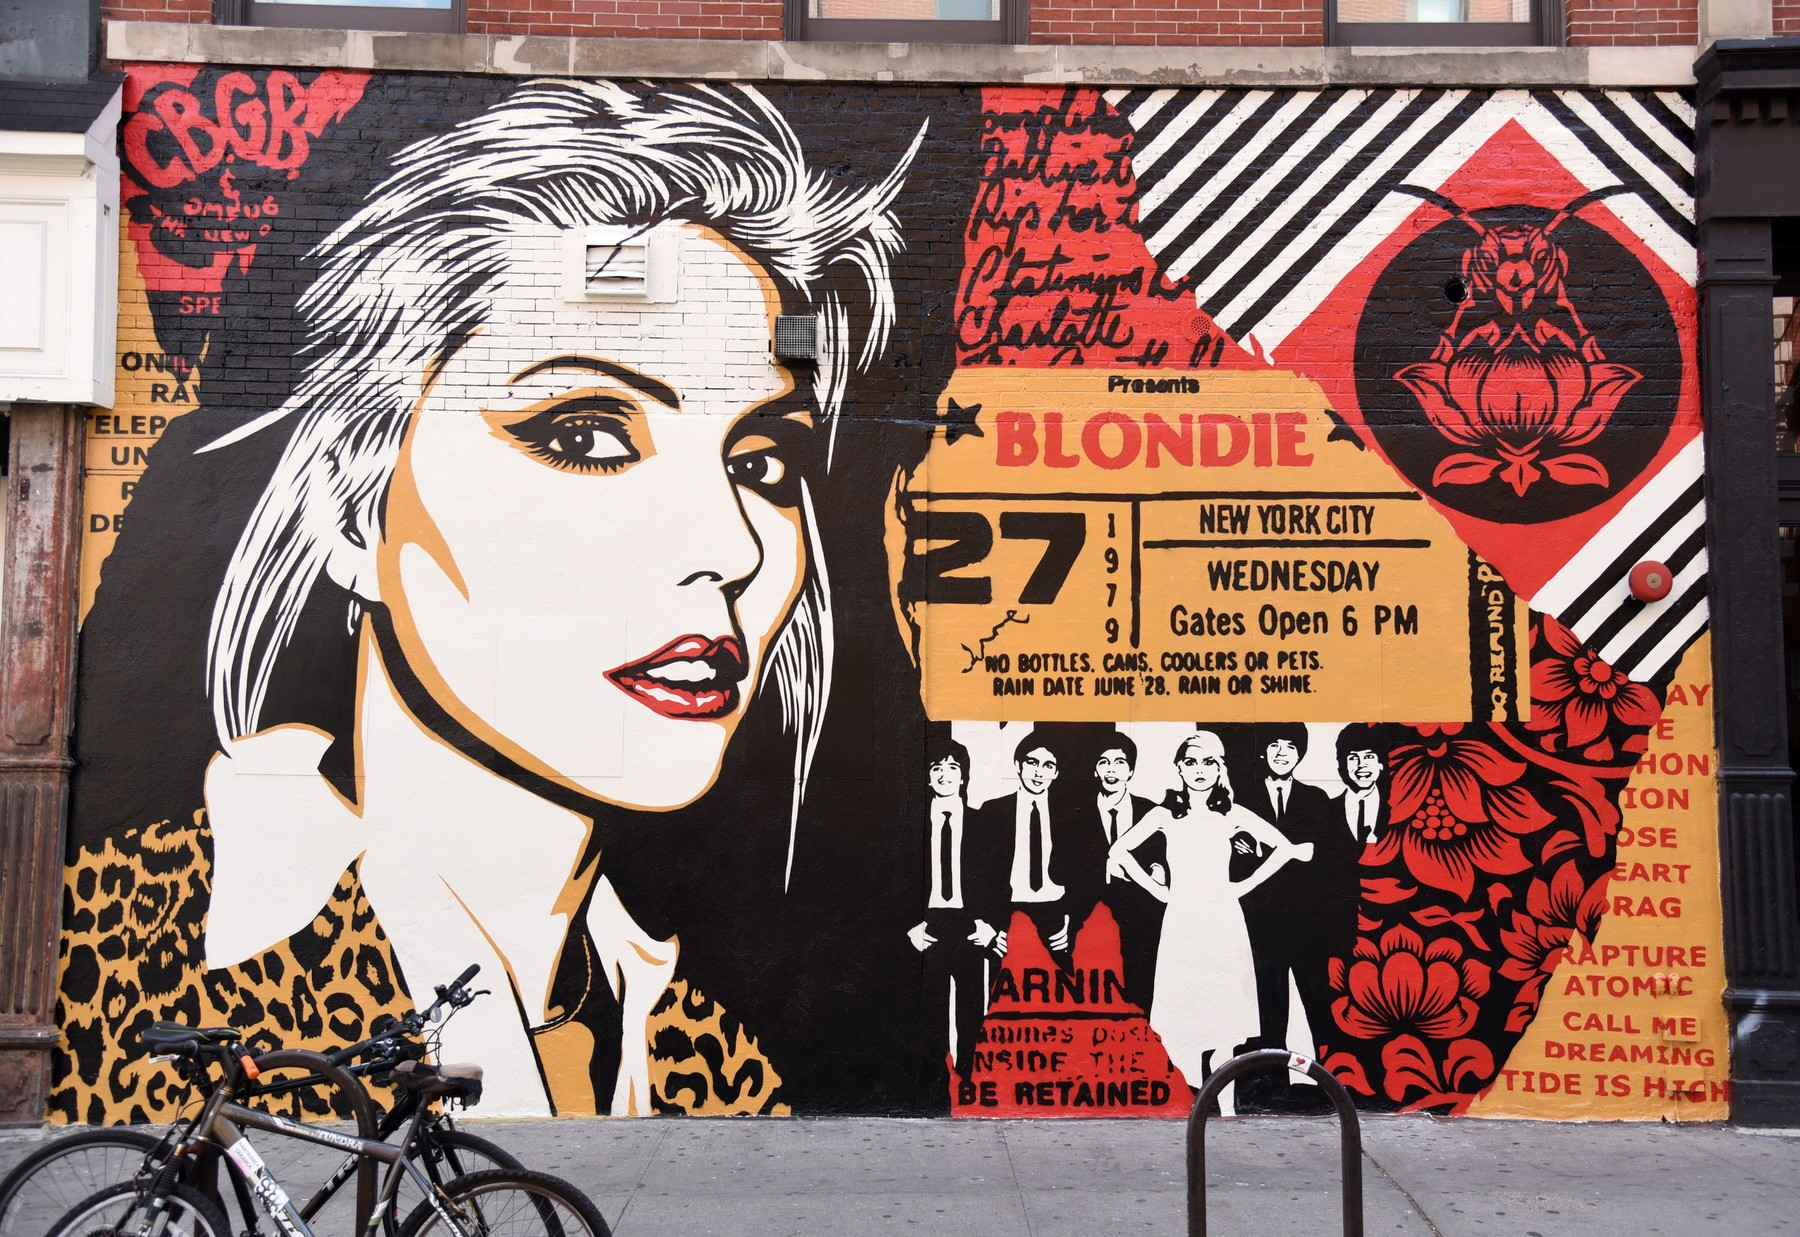 Street Art out and about for Shepard Fairey Unveiled New Mural of Blondie's Debbie Harry, across from the old CBGB's at Bowery and Bleecker, New York, NY August 24, 2017., Image: 346393816, License: Rights-managed, Restrictions: For usage credit please use; Derek Storm/Everett Collection, Model Release: no, Credit line: Derek Storm / Everett / Profimedia